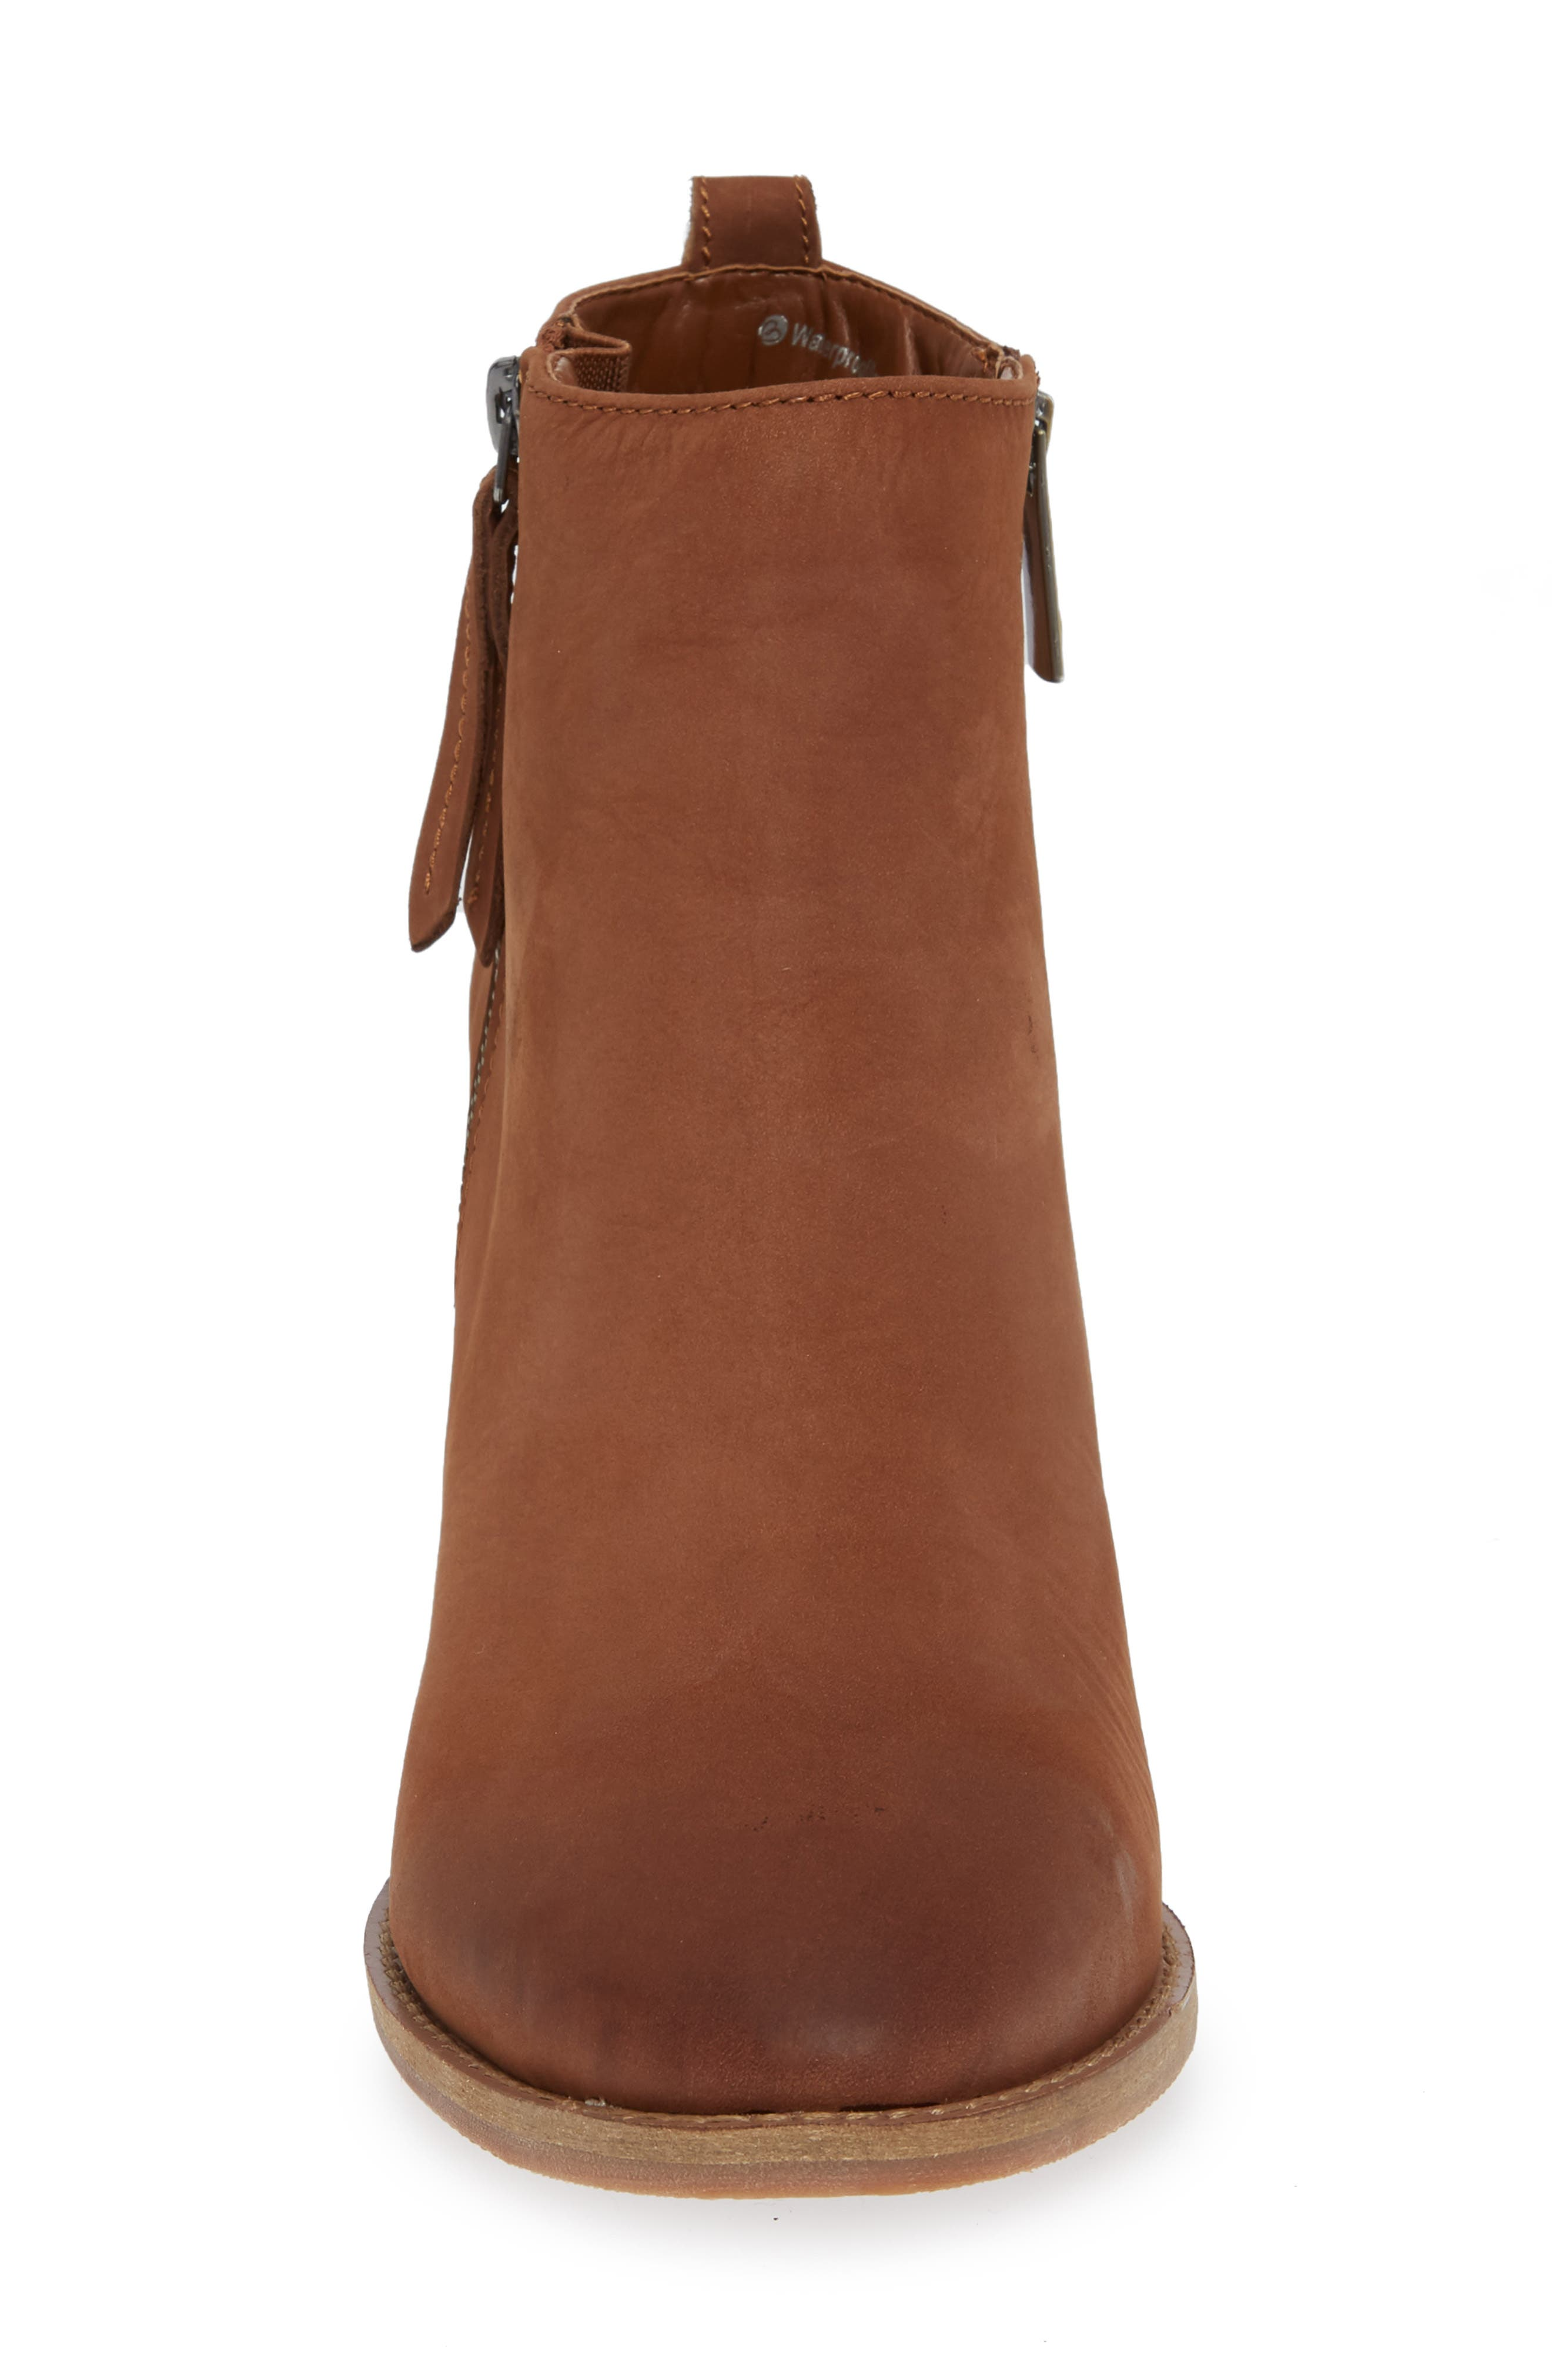 Nova Waterproof Bootie,                             Alternate thumbnail 4, color,                             COGNAC NUBUCK